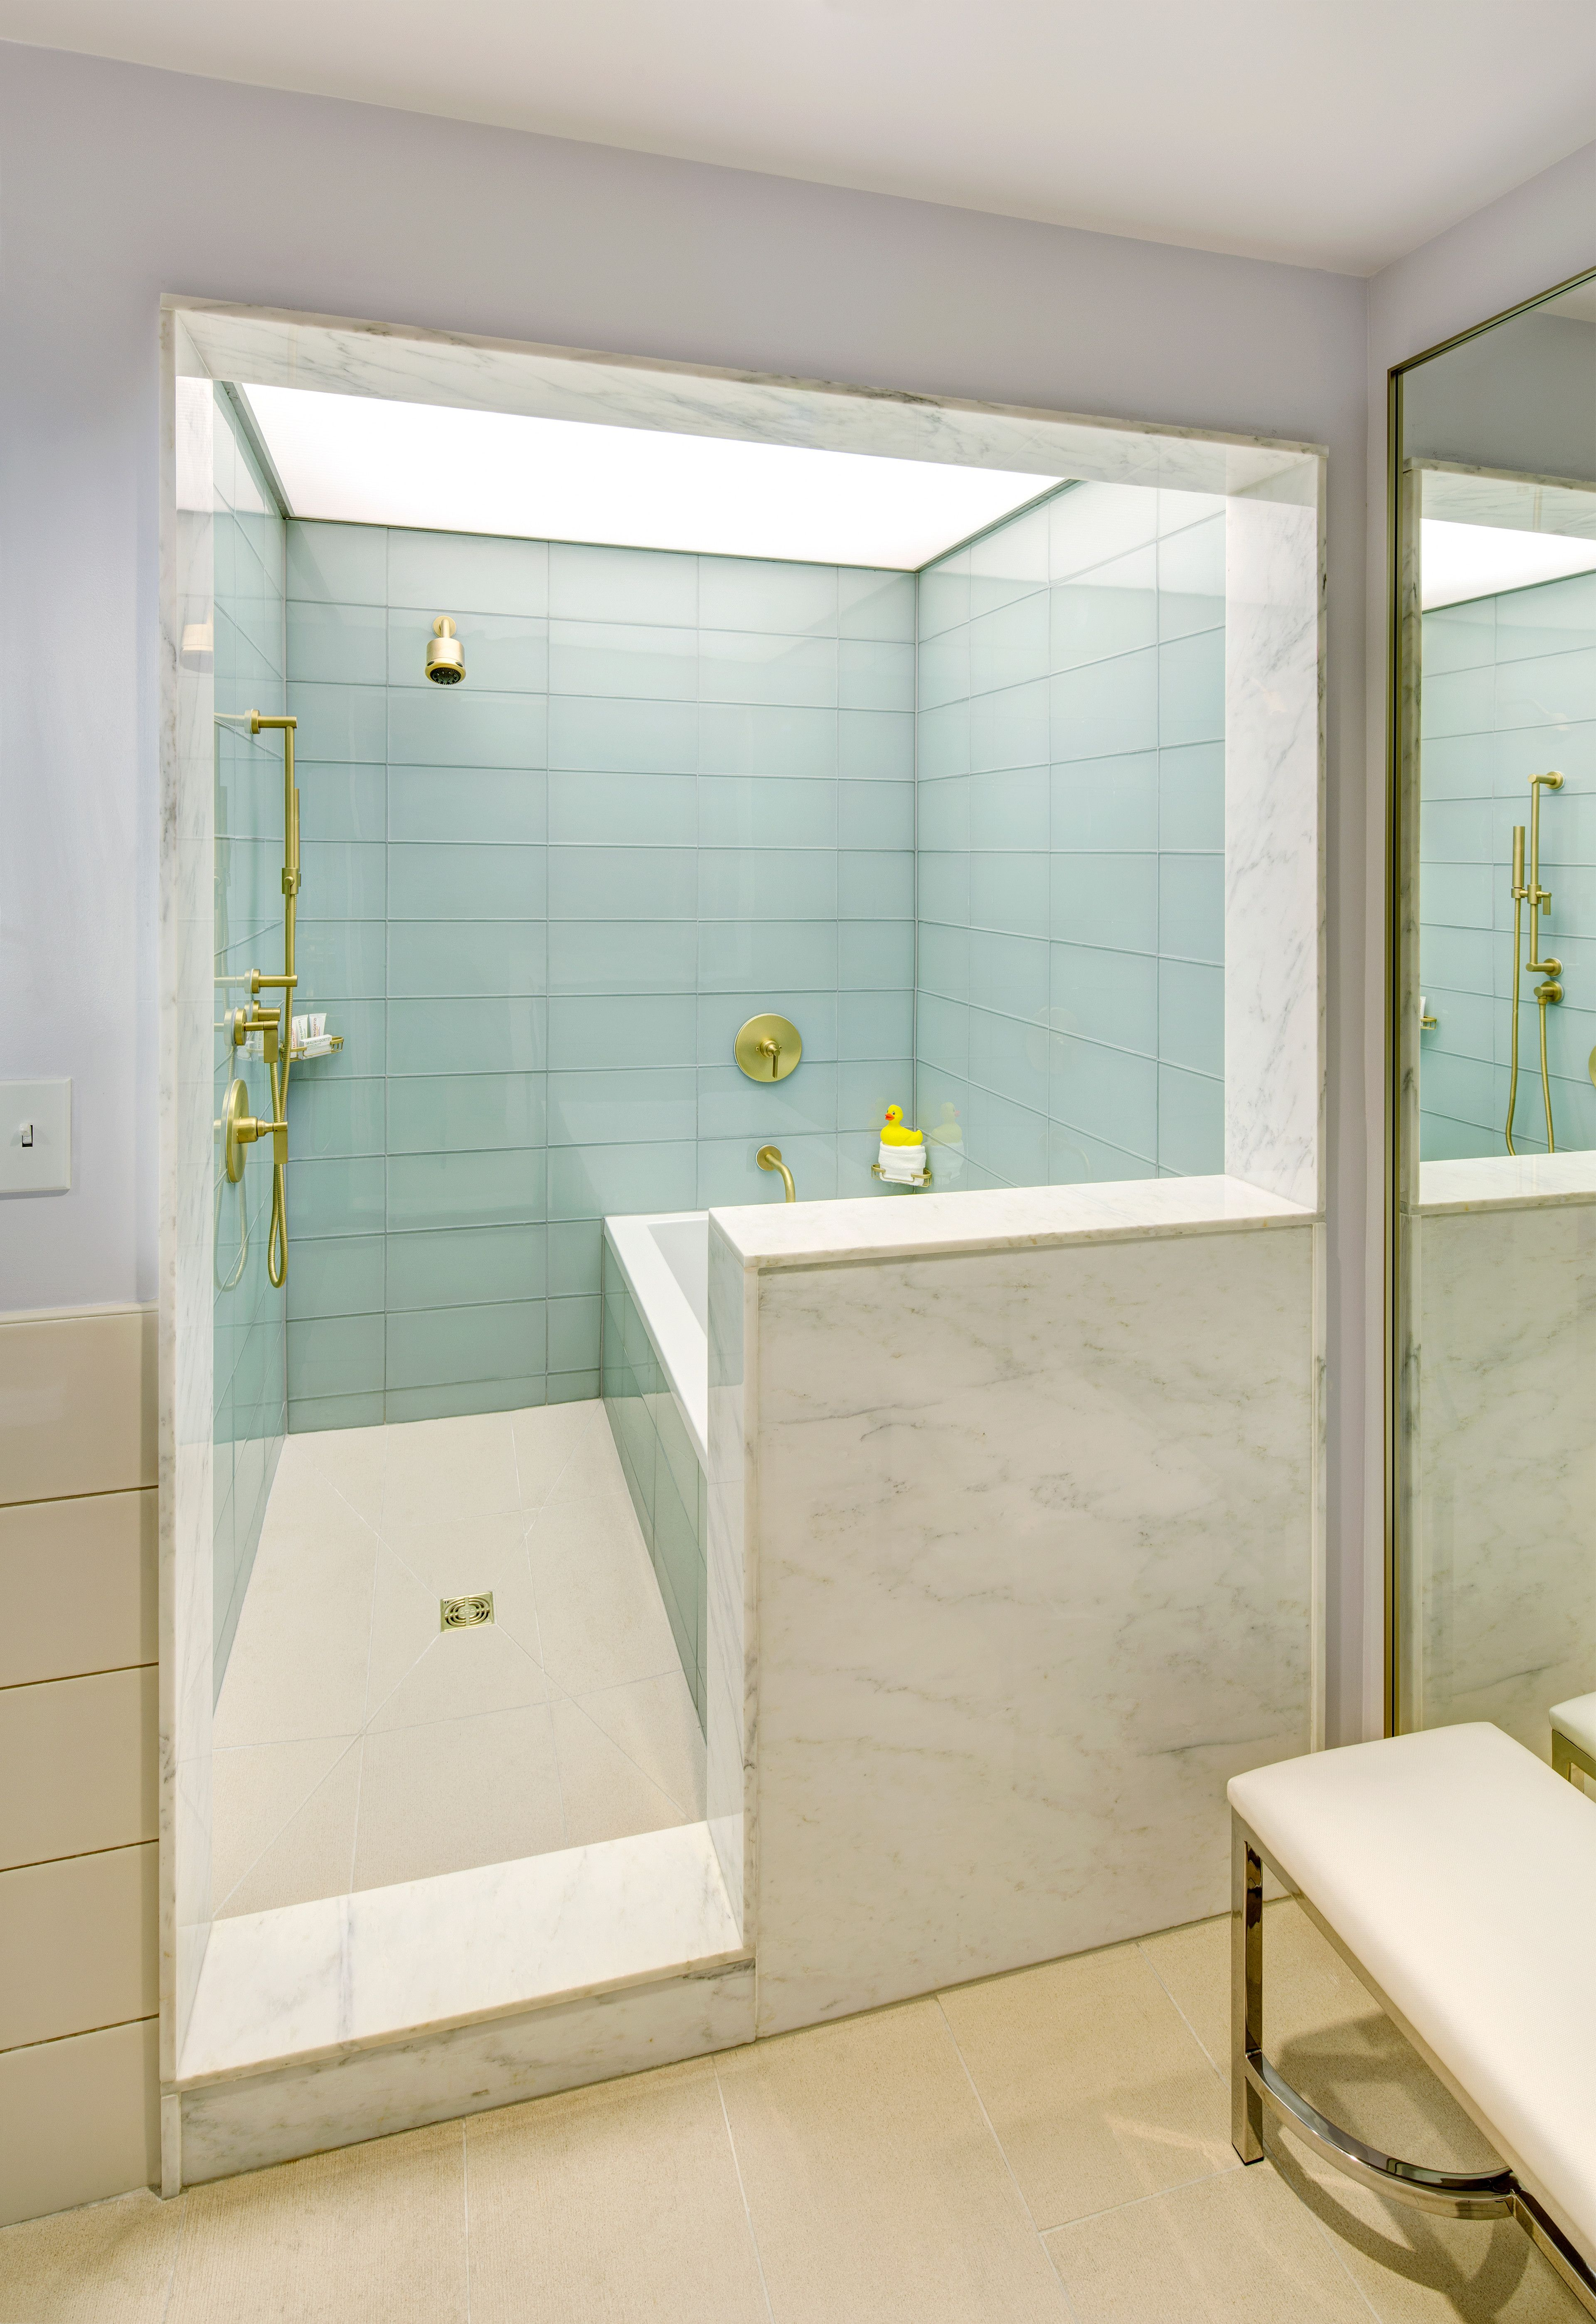 The spacious bathroom features a wet room with a tub and ... on Wet Room With Freestanding Tub  id=85375